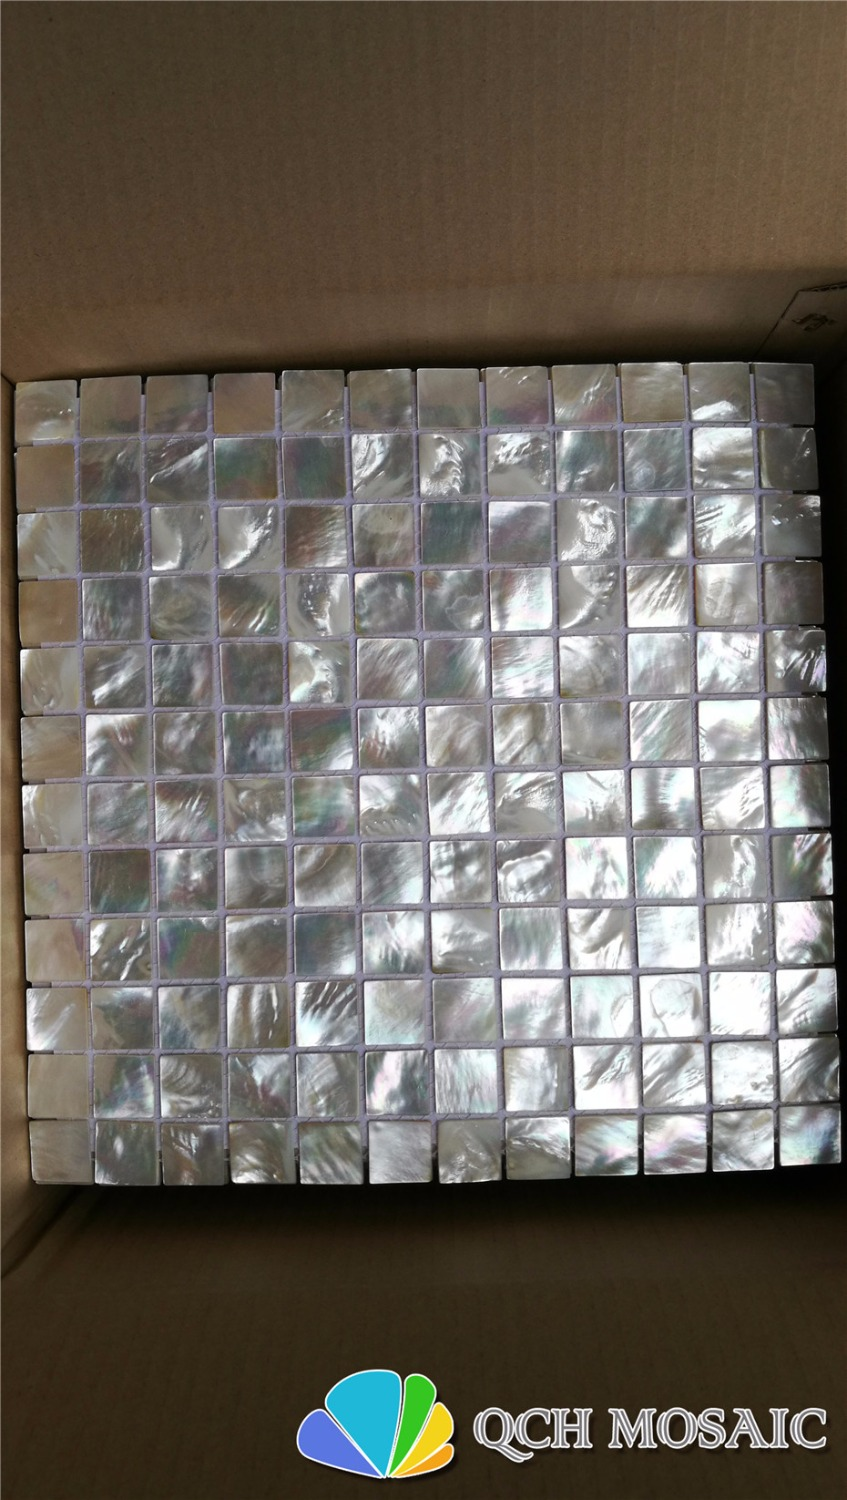 Whitelip mother of pearl mosaic tile for kitchen backsplash and bathroom 5pcs/lot 25x25chip size qch135 free shipping wave pattern 100% natural penguin shell and chinese freshwater shell mother of pearl tile wall tile